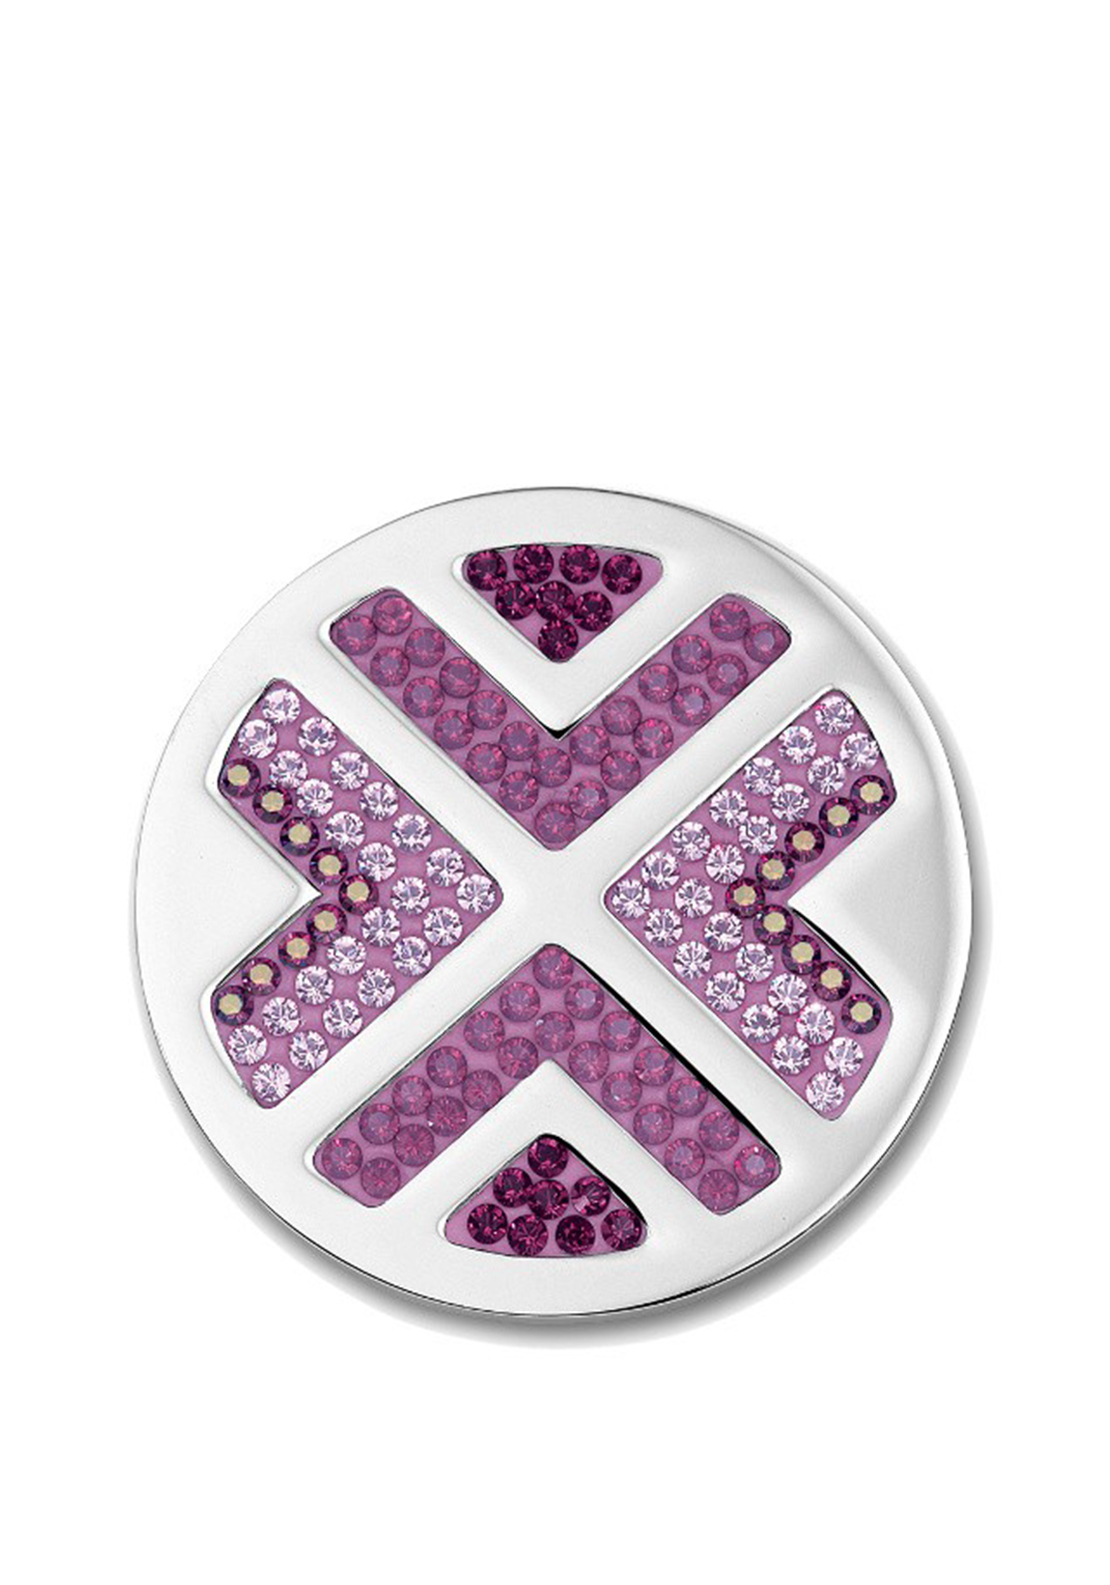 Mi Moneda Rastro Large Silver Coin Pendant, Purple